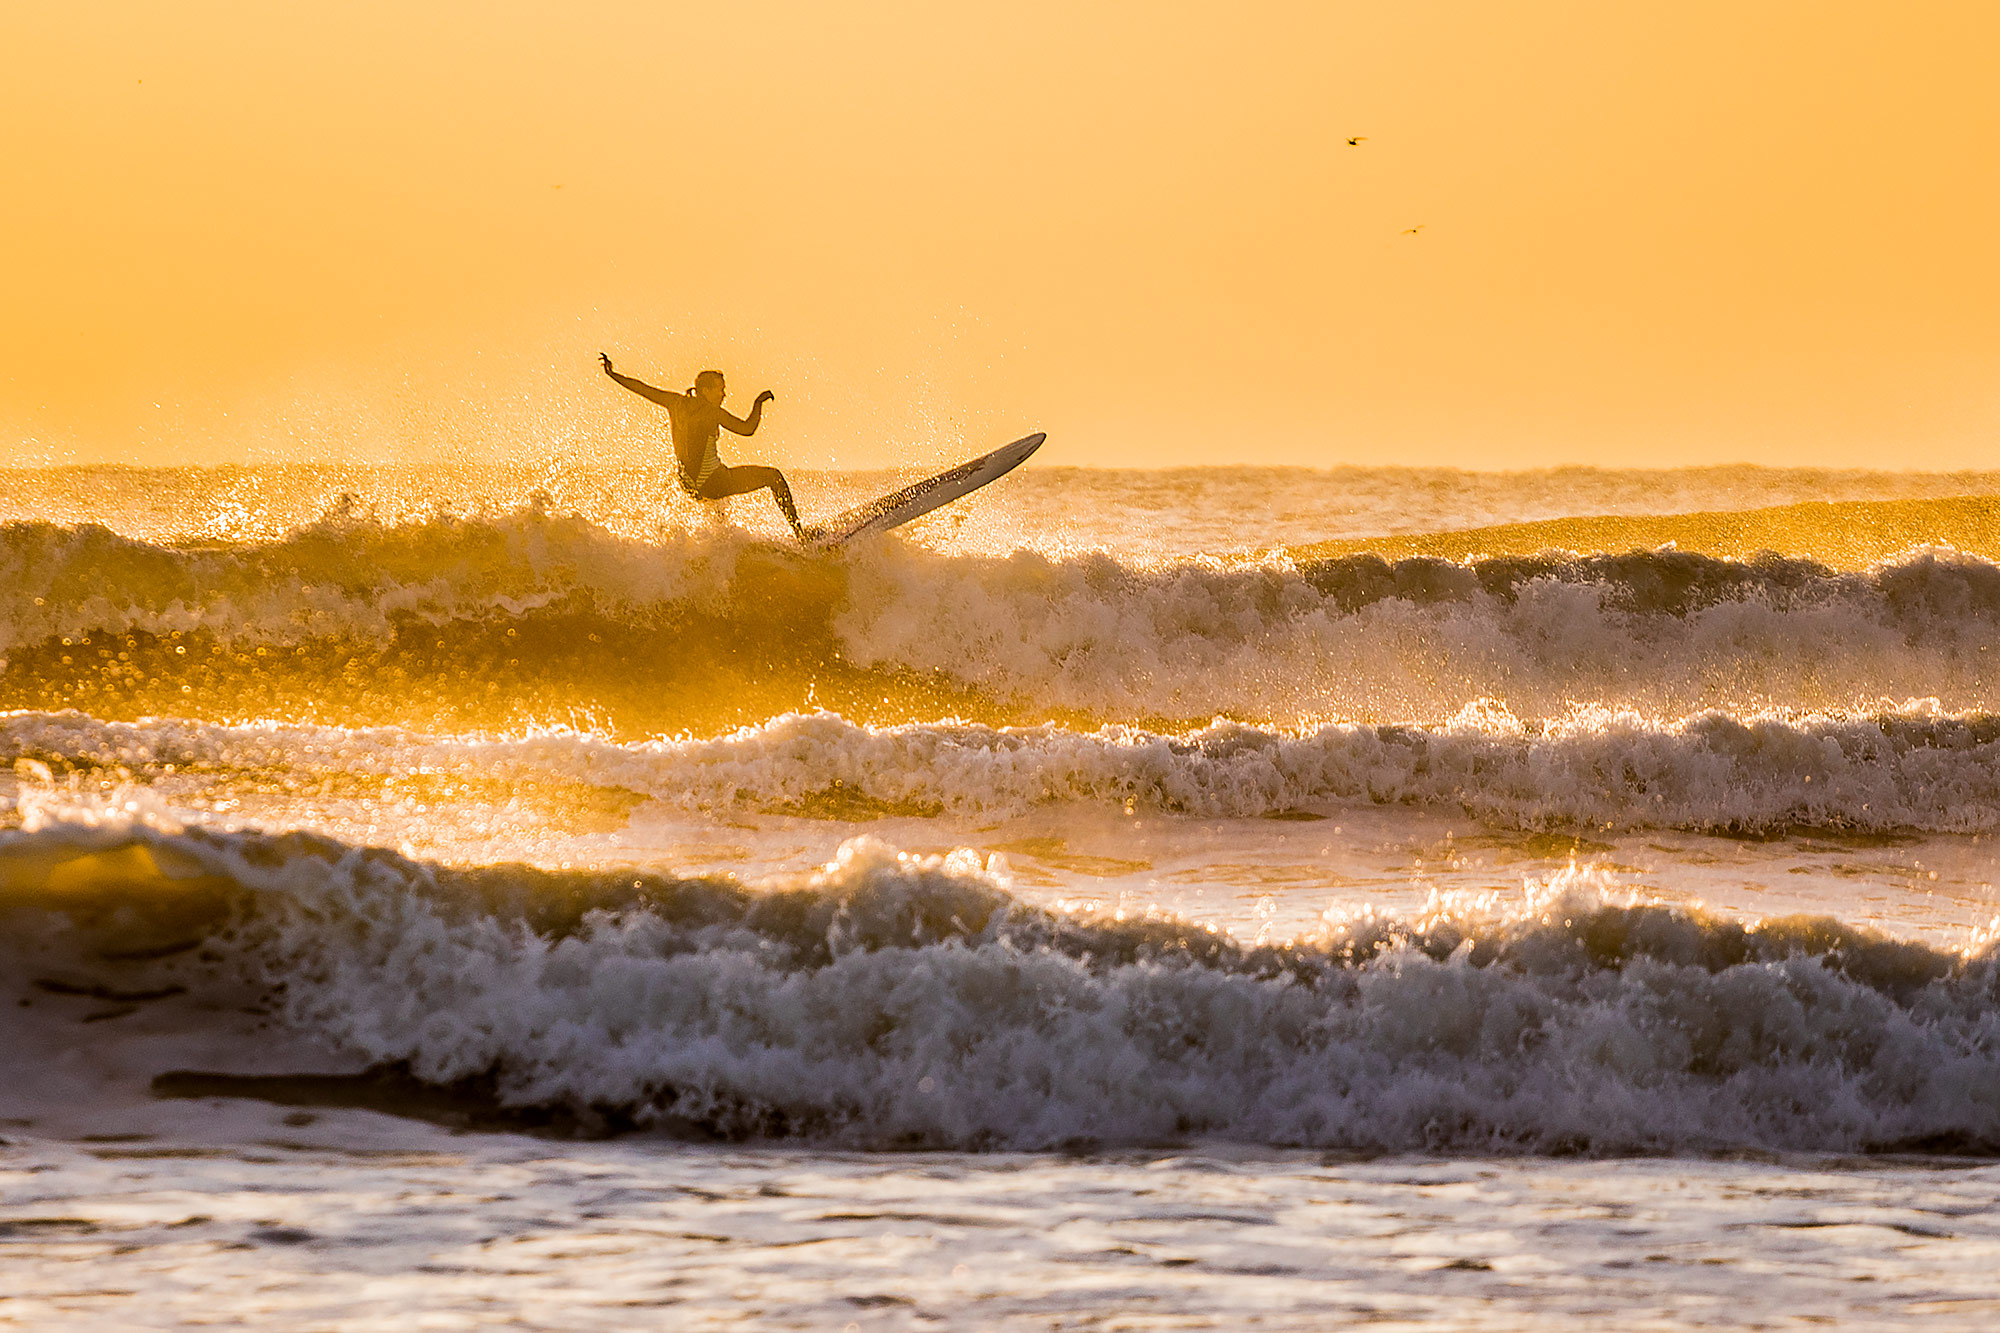 Texas surfer girl on a wave at sunrise